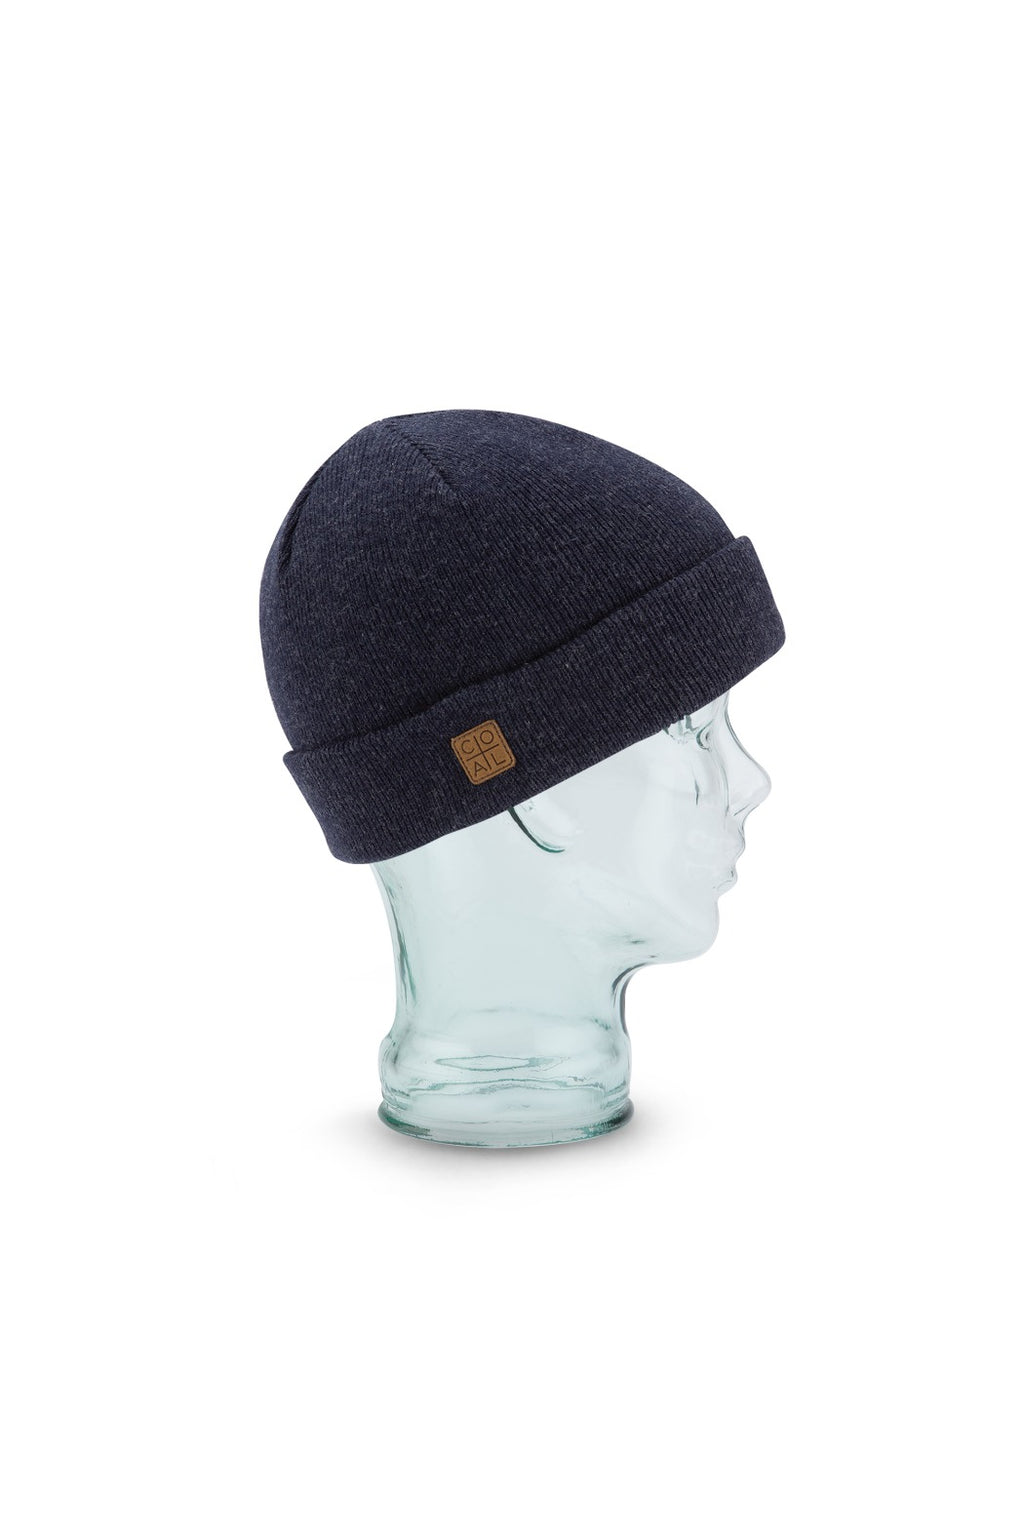 Coal Harbor Beanie - Heather Navy